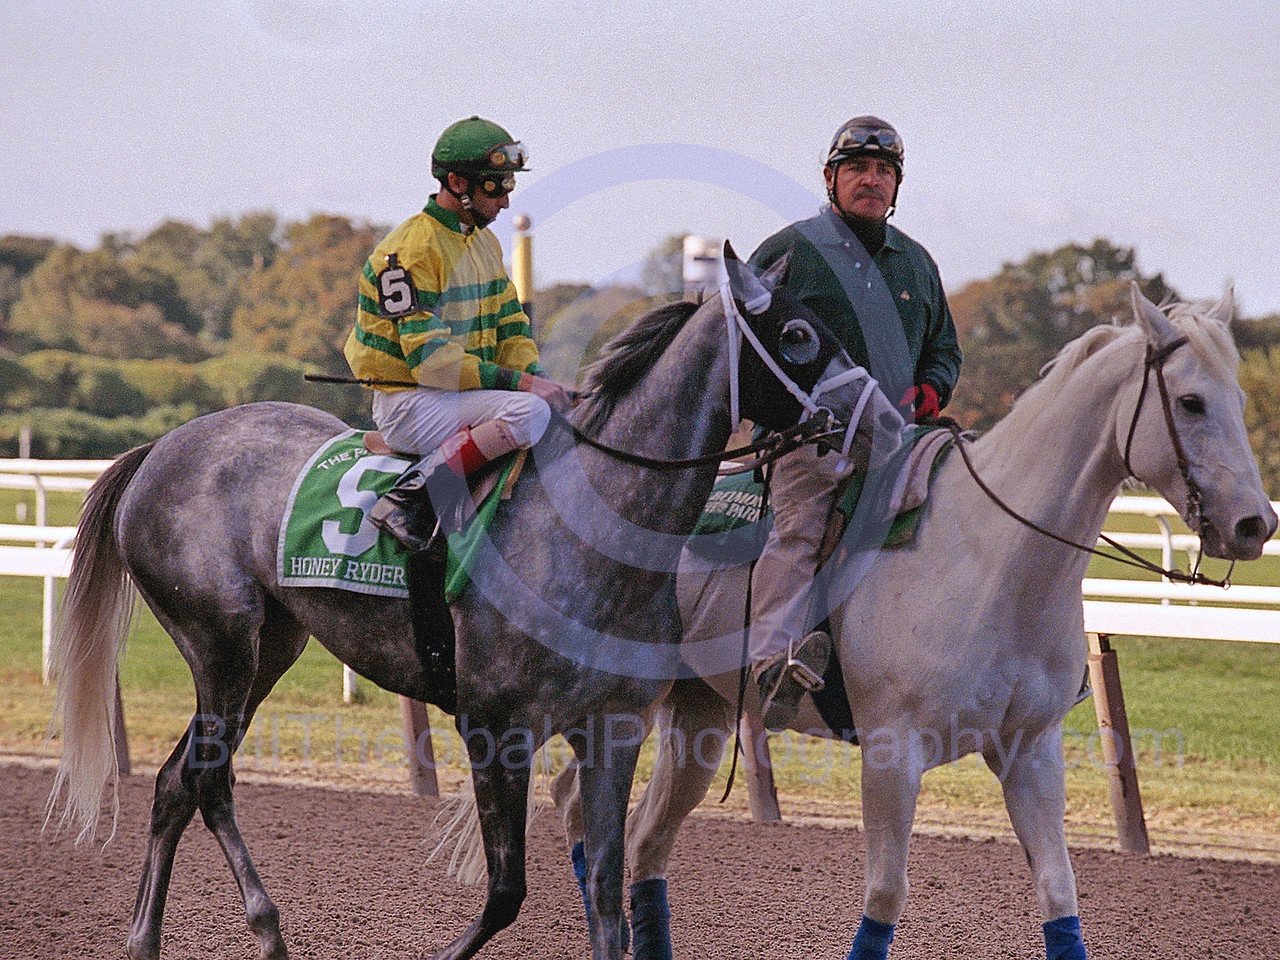 Honey Ryder and John Velasquez in the post parade for the 2006 running of the Flower Bowl at Belmont Park.  Honey Ryder would go on to win and by doing so, secure the earnings record in a year for Todd Pletcher.